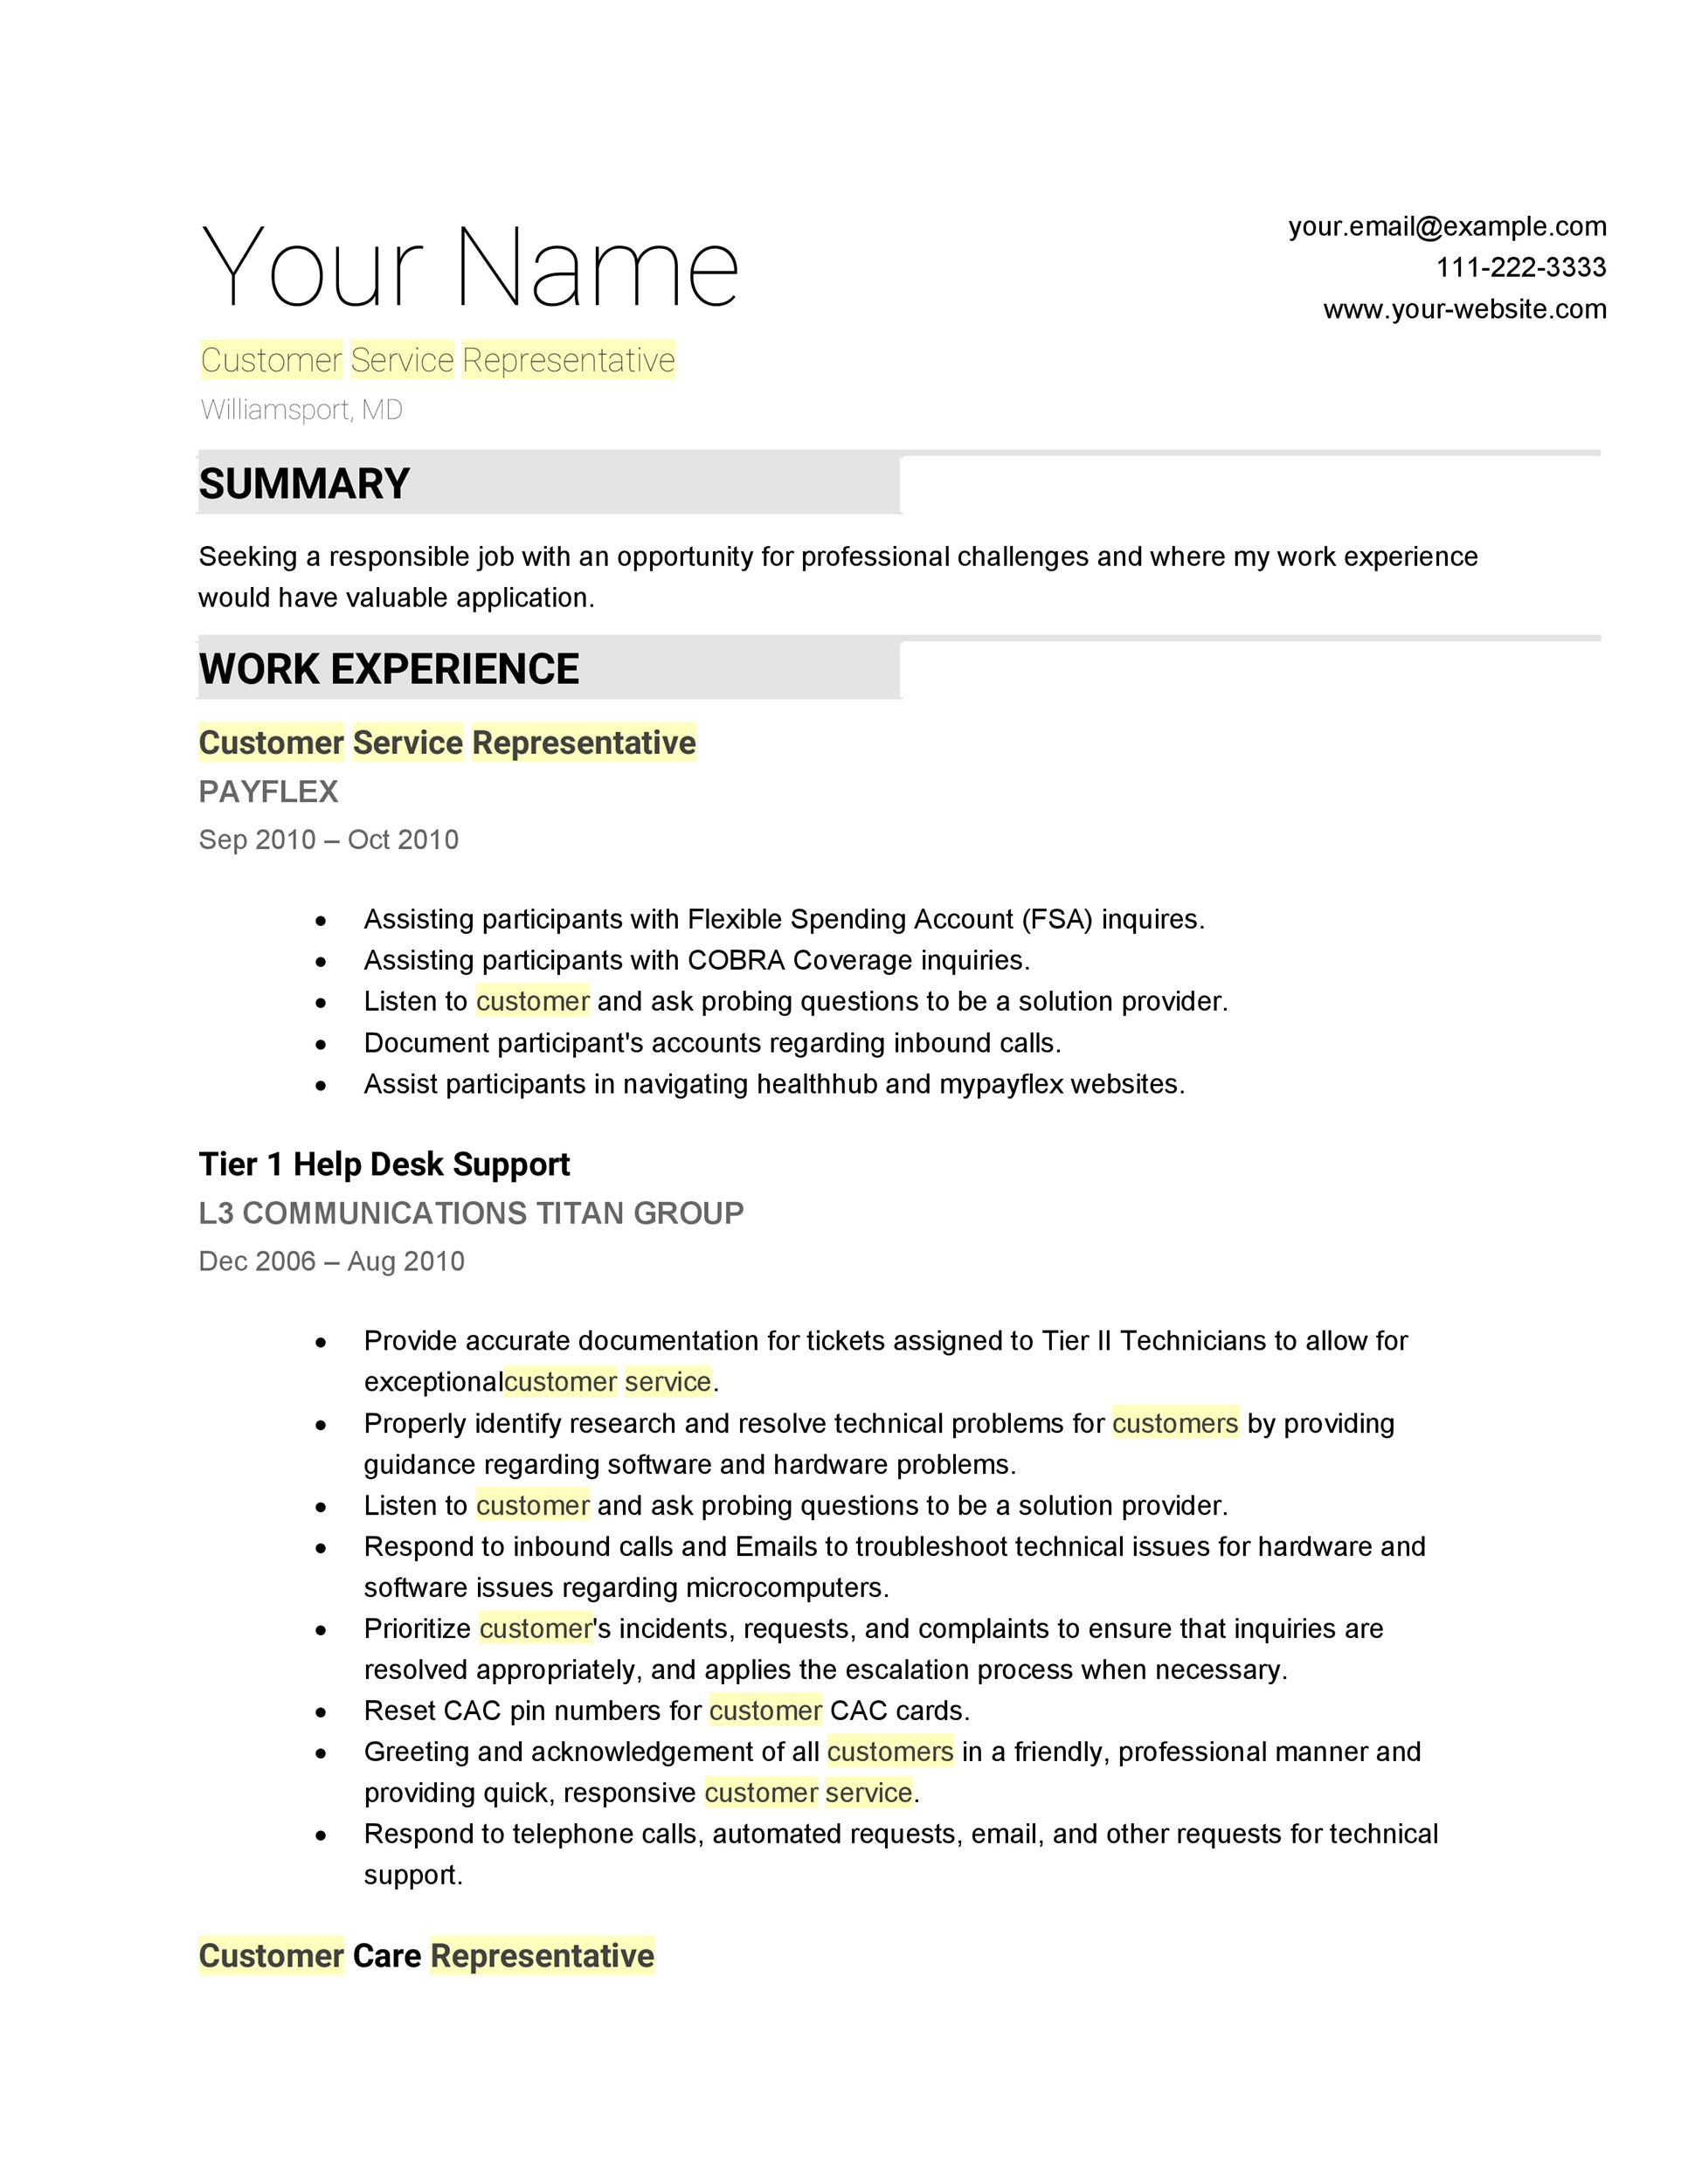 30+ Customer Service Resume Examples - Template Lab - Resumes Templates